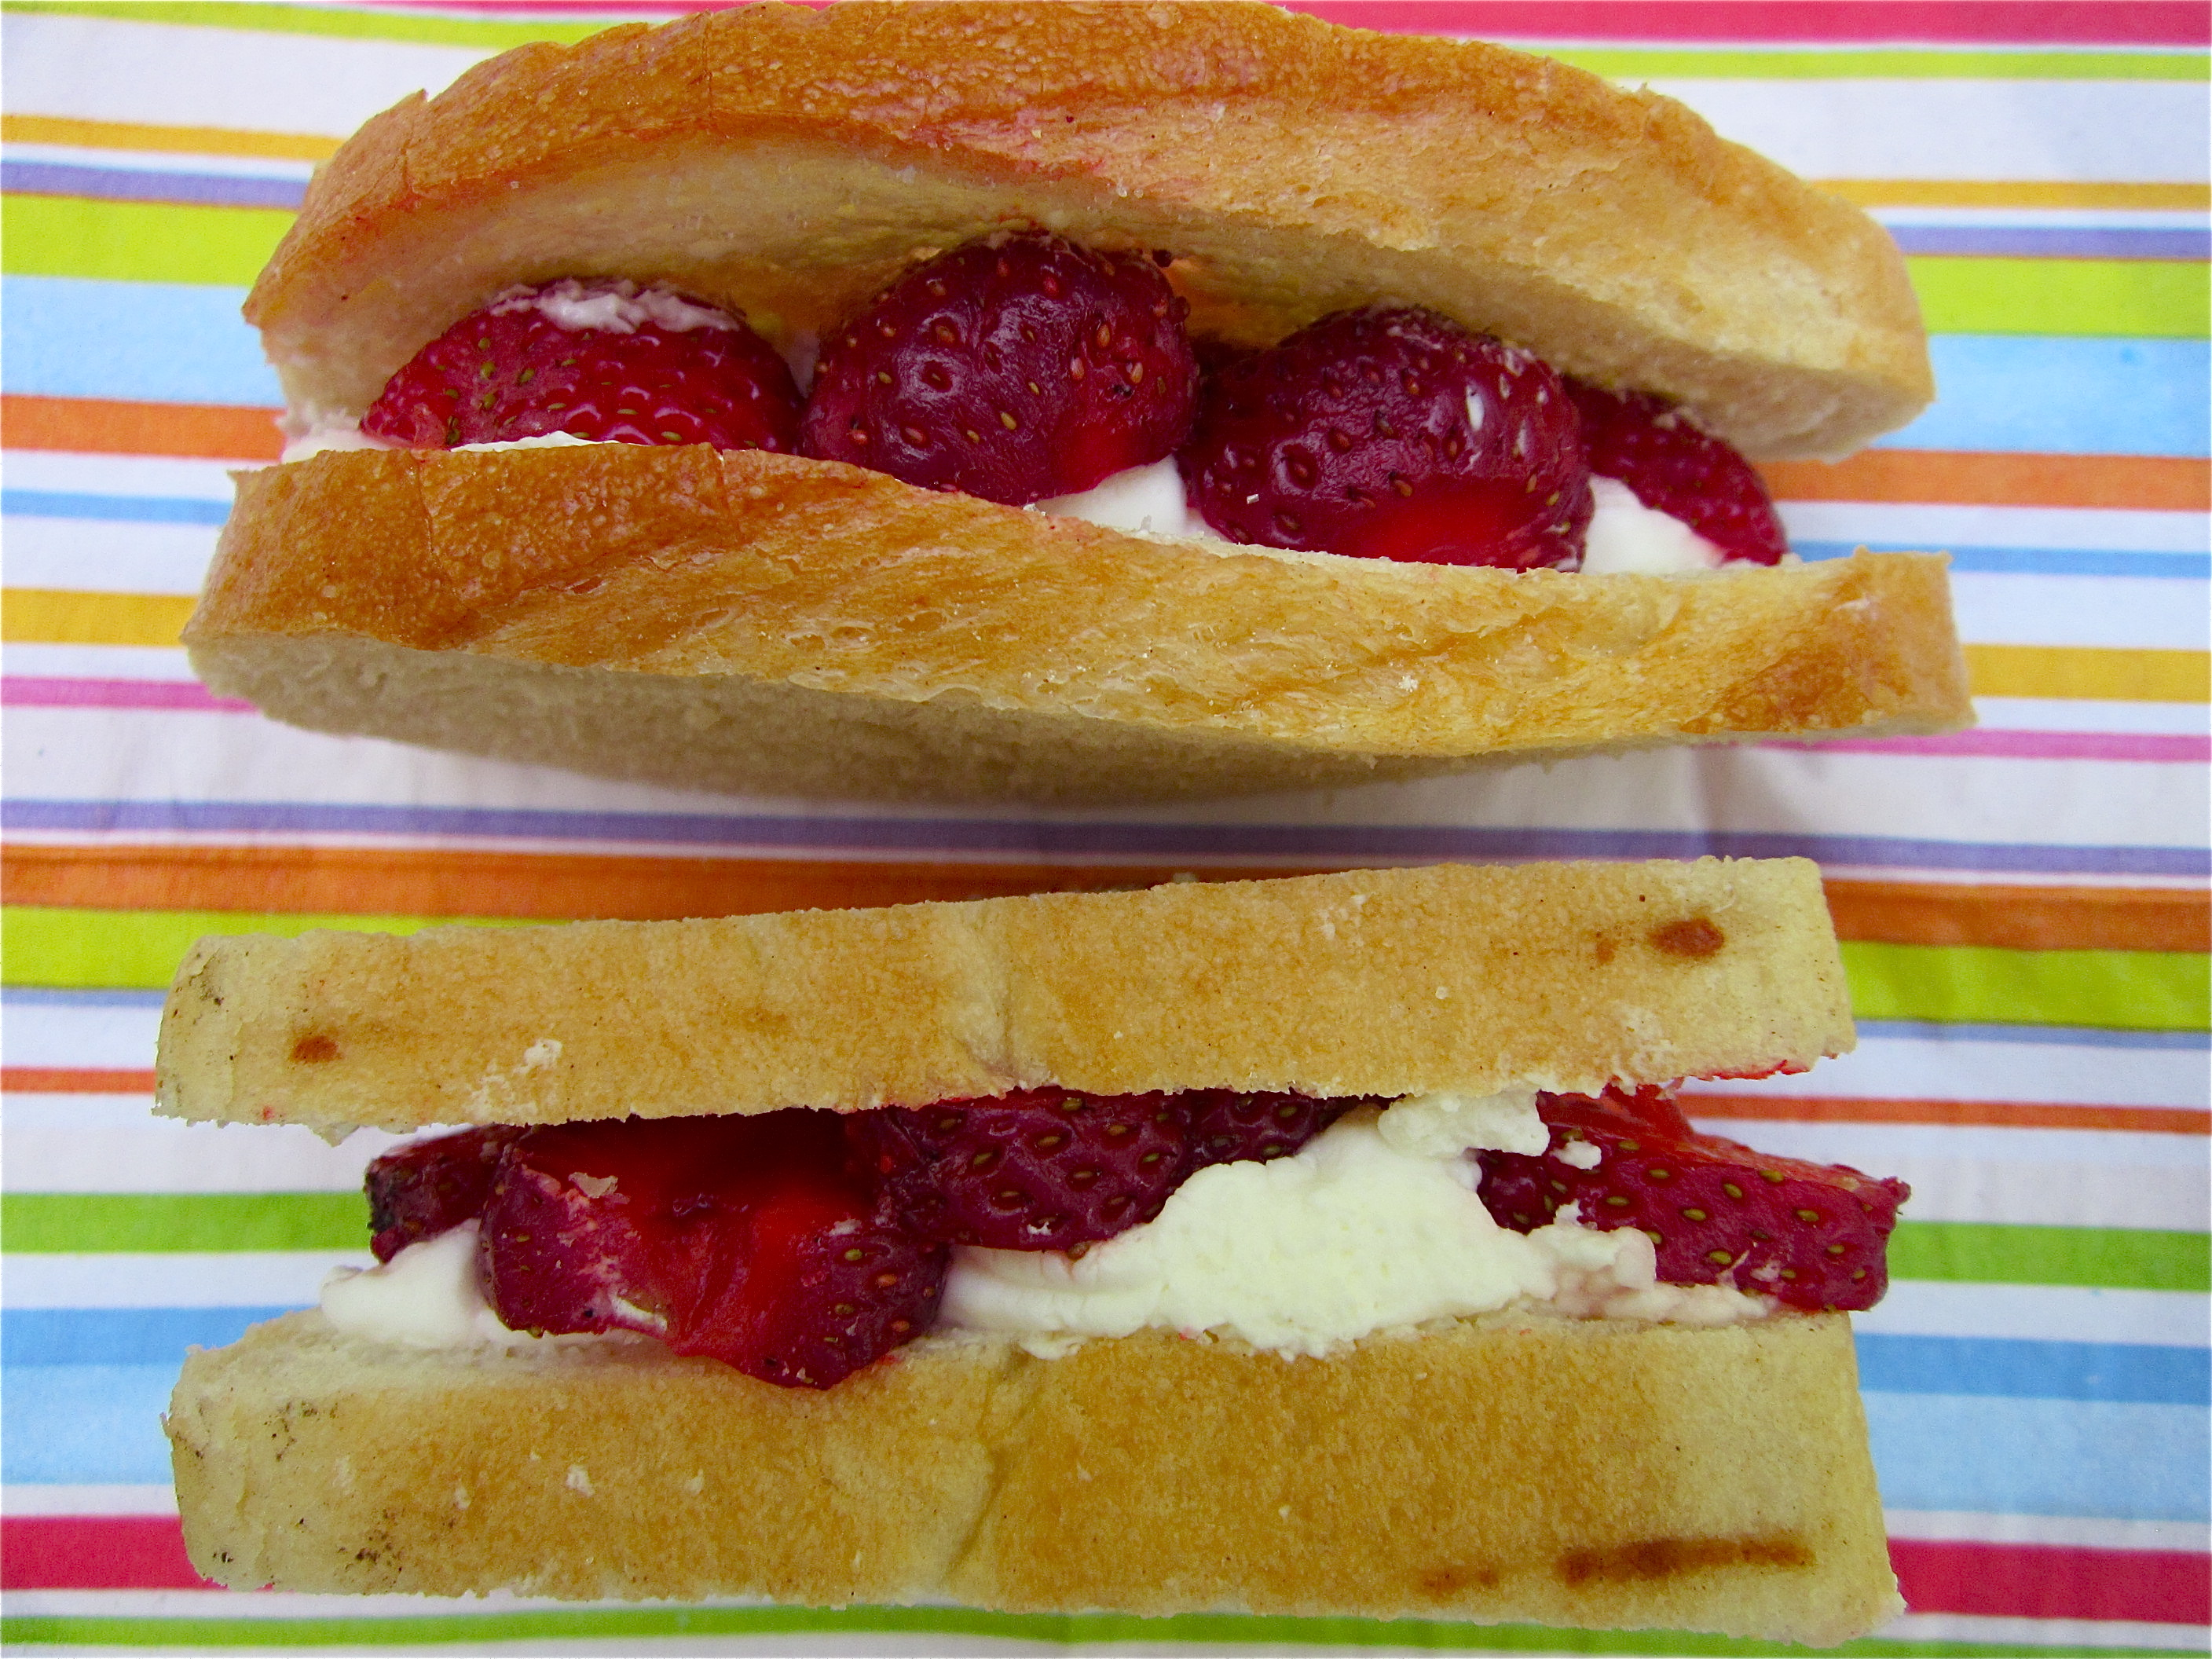 Strawberry Sandwich - 1